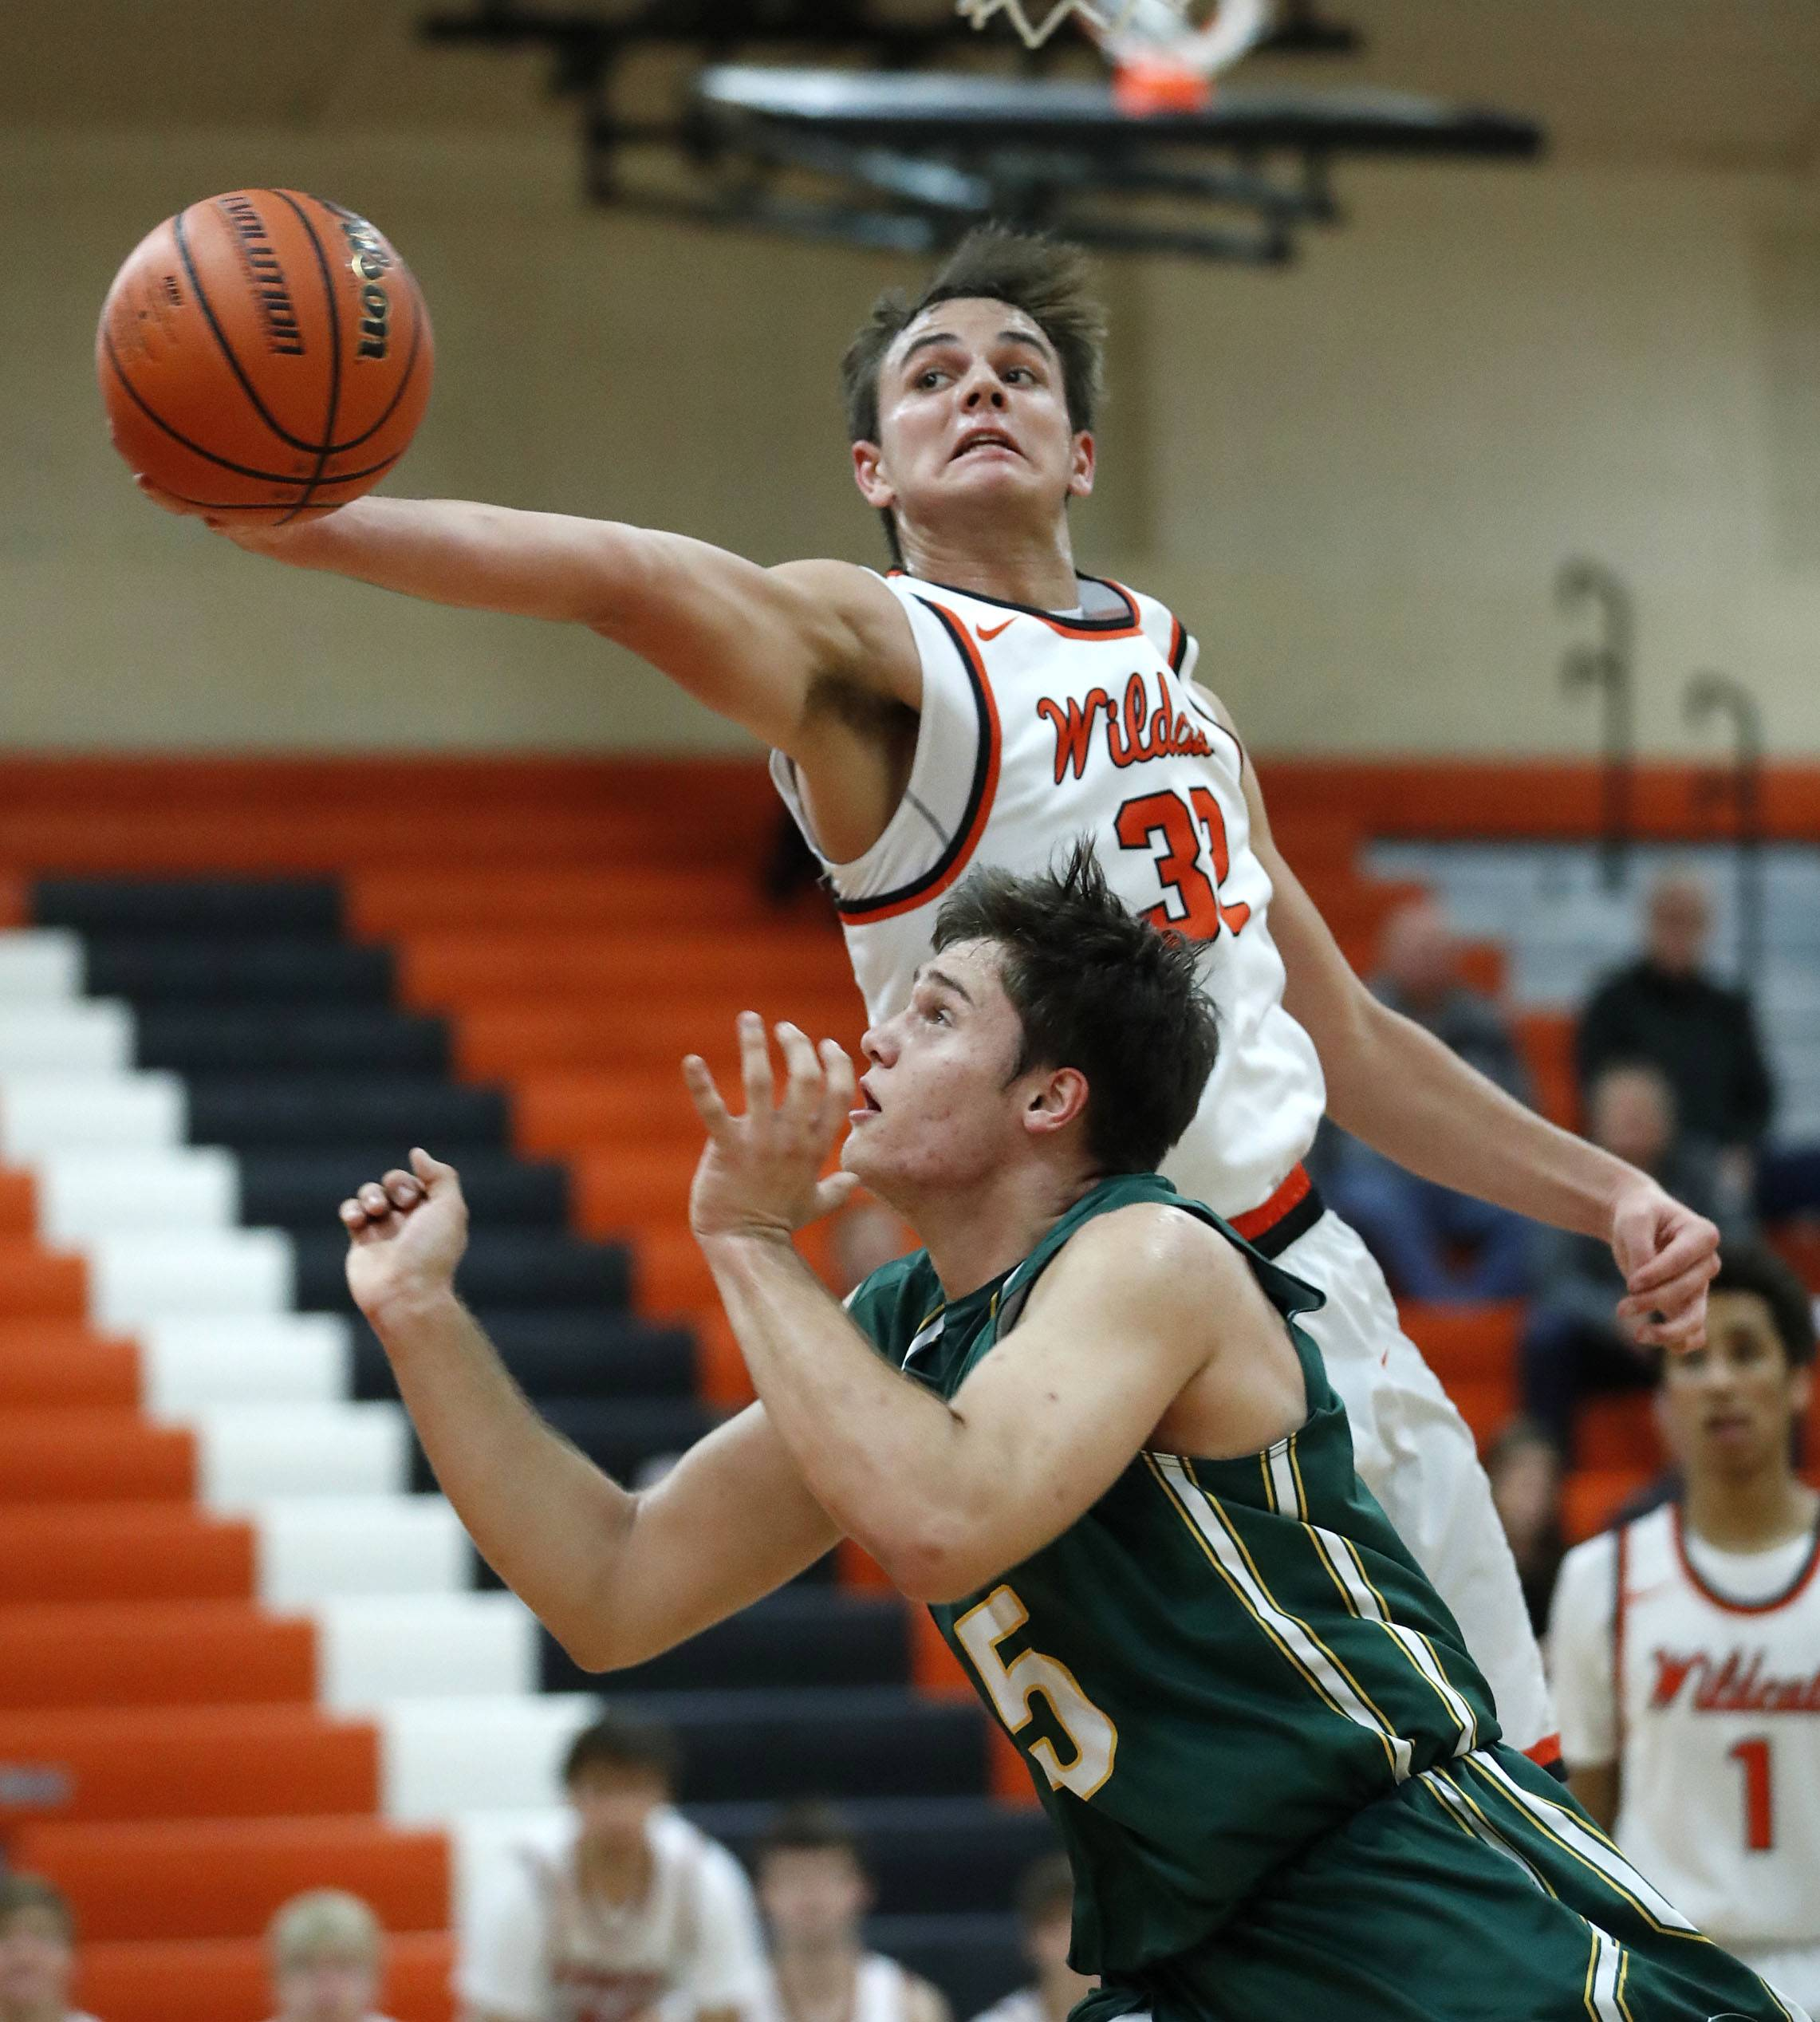 Libertyville's Travis Clark, top, and Stevenson's Matthew Kaznikov during their game Tuesday night in Libertyville.